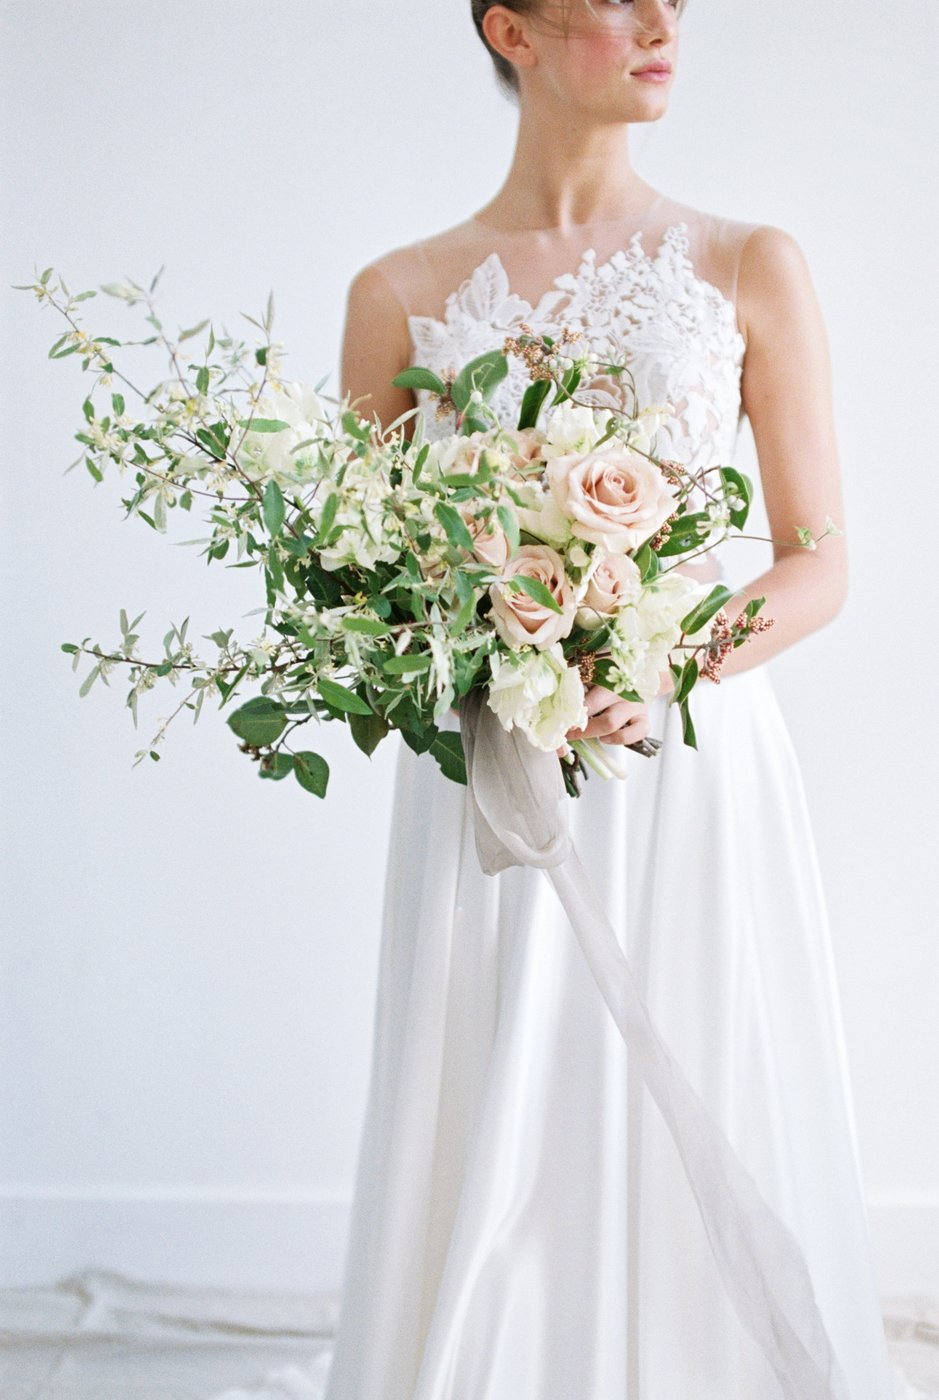 floral-details-of-bridal-bouquet.jpg